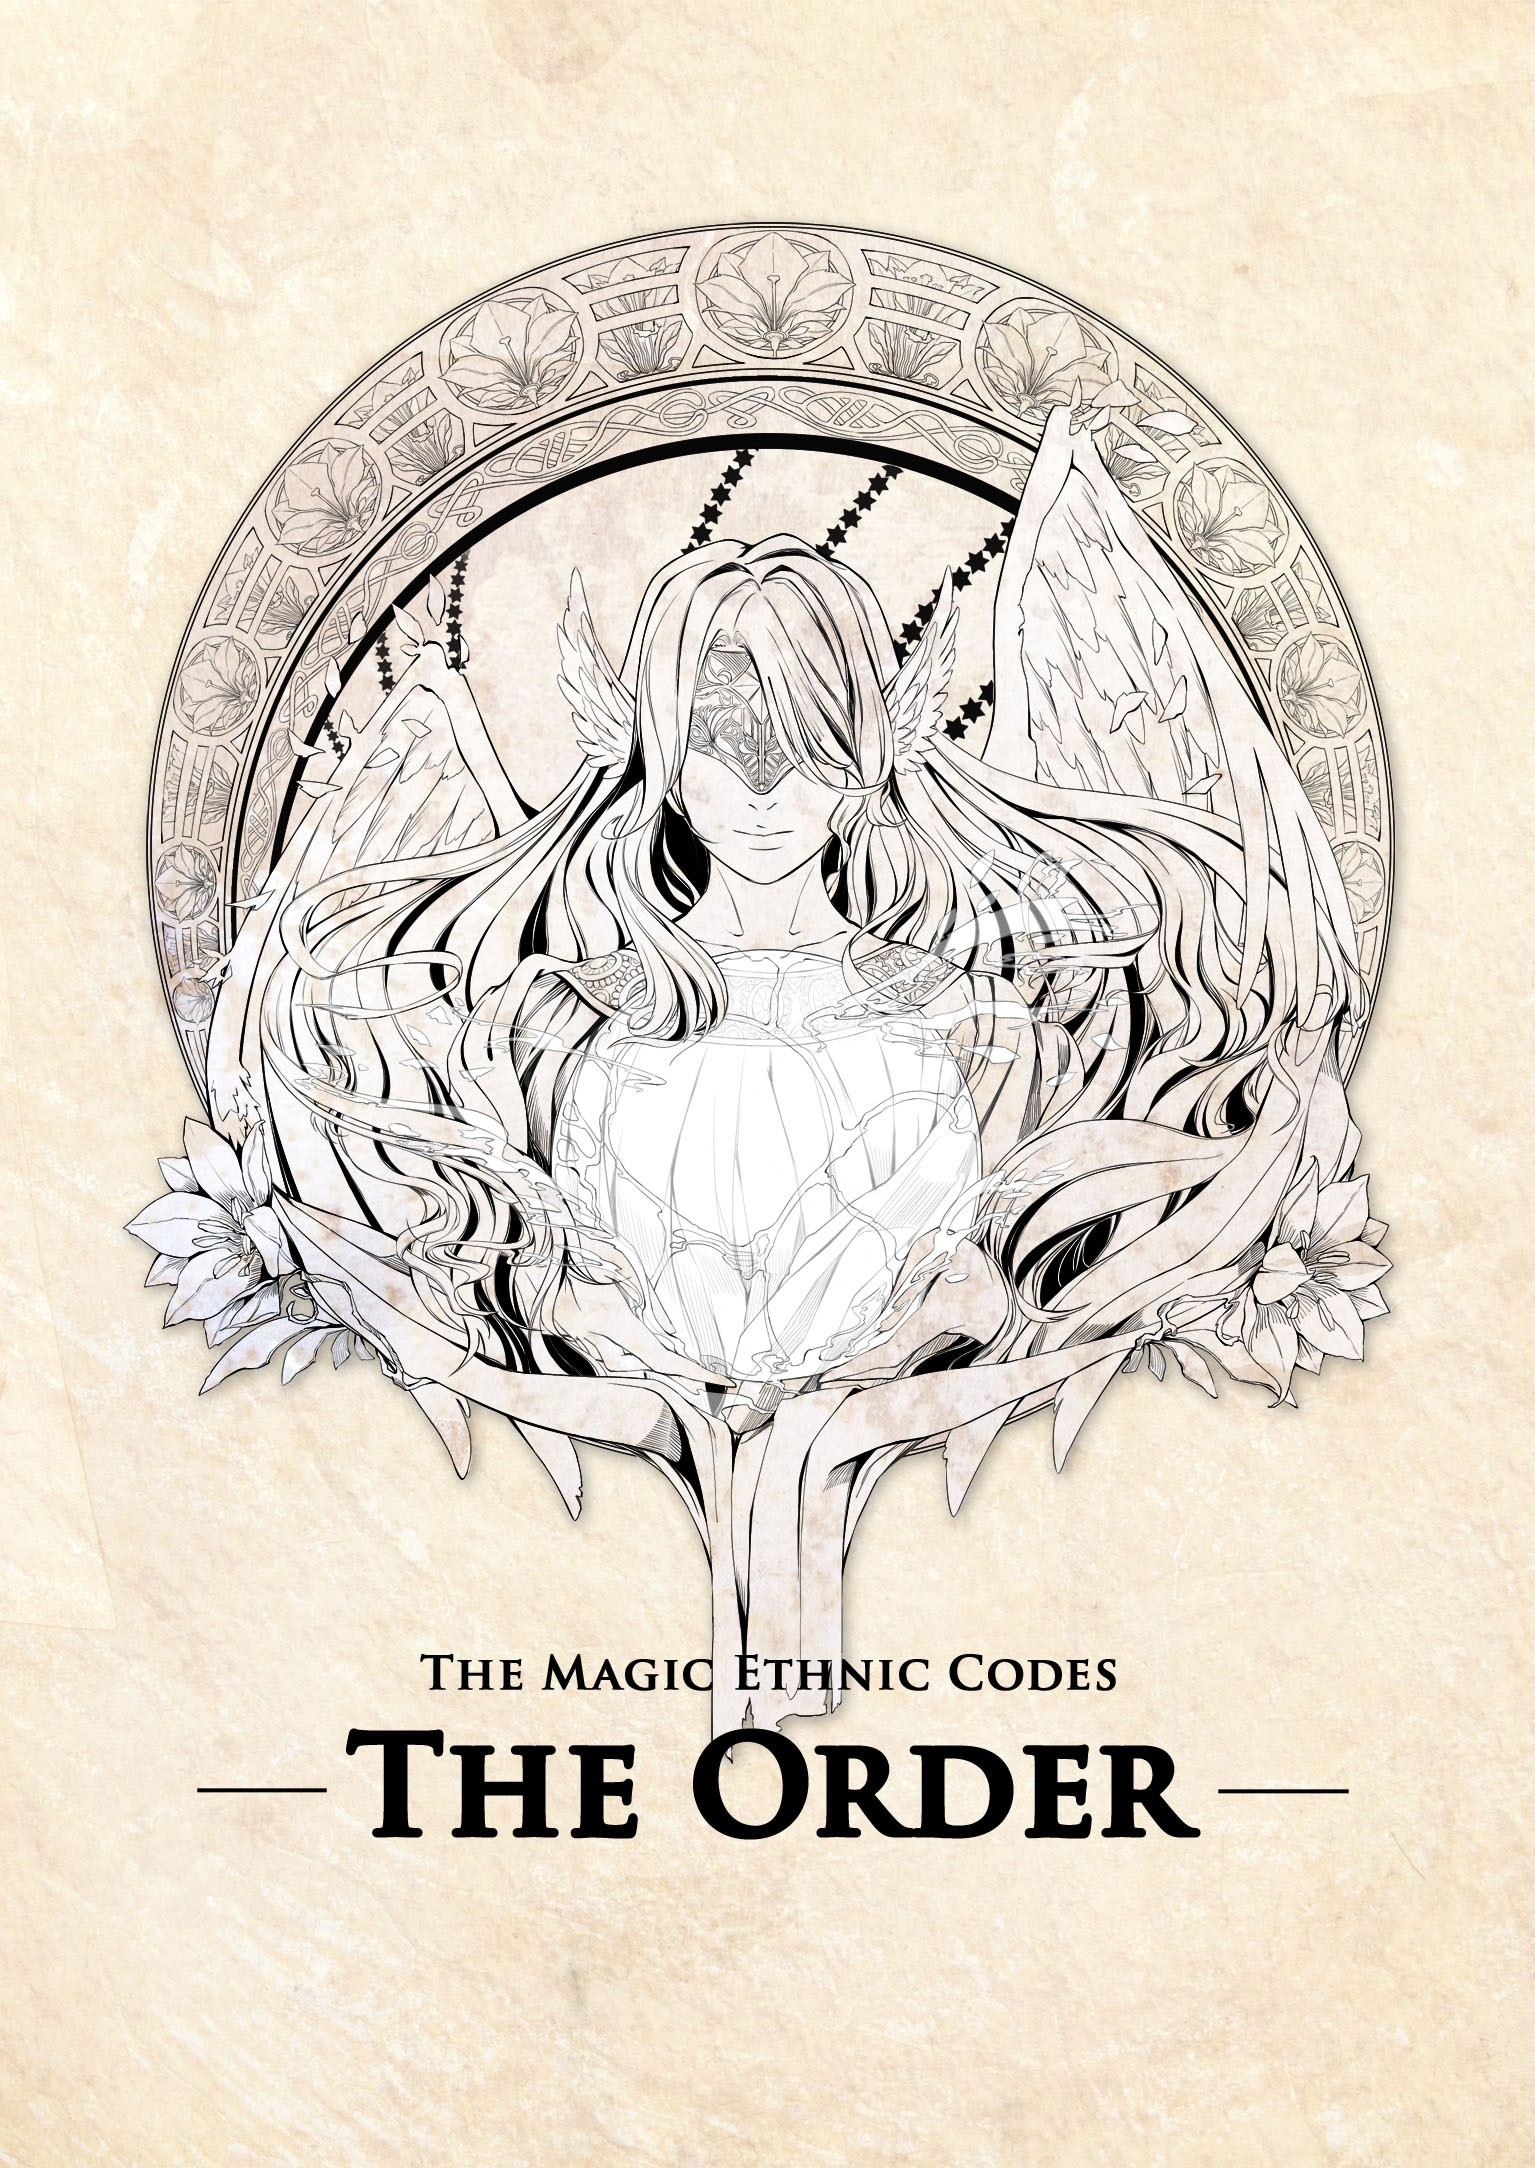 《魔幻种族事典·The Magic Ethnic Codes·The Order》